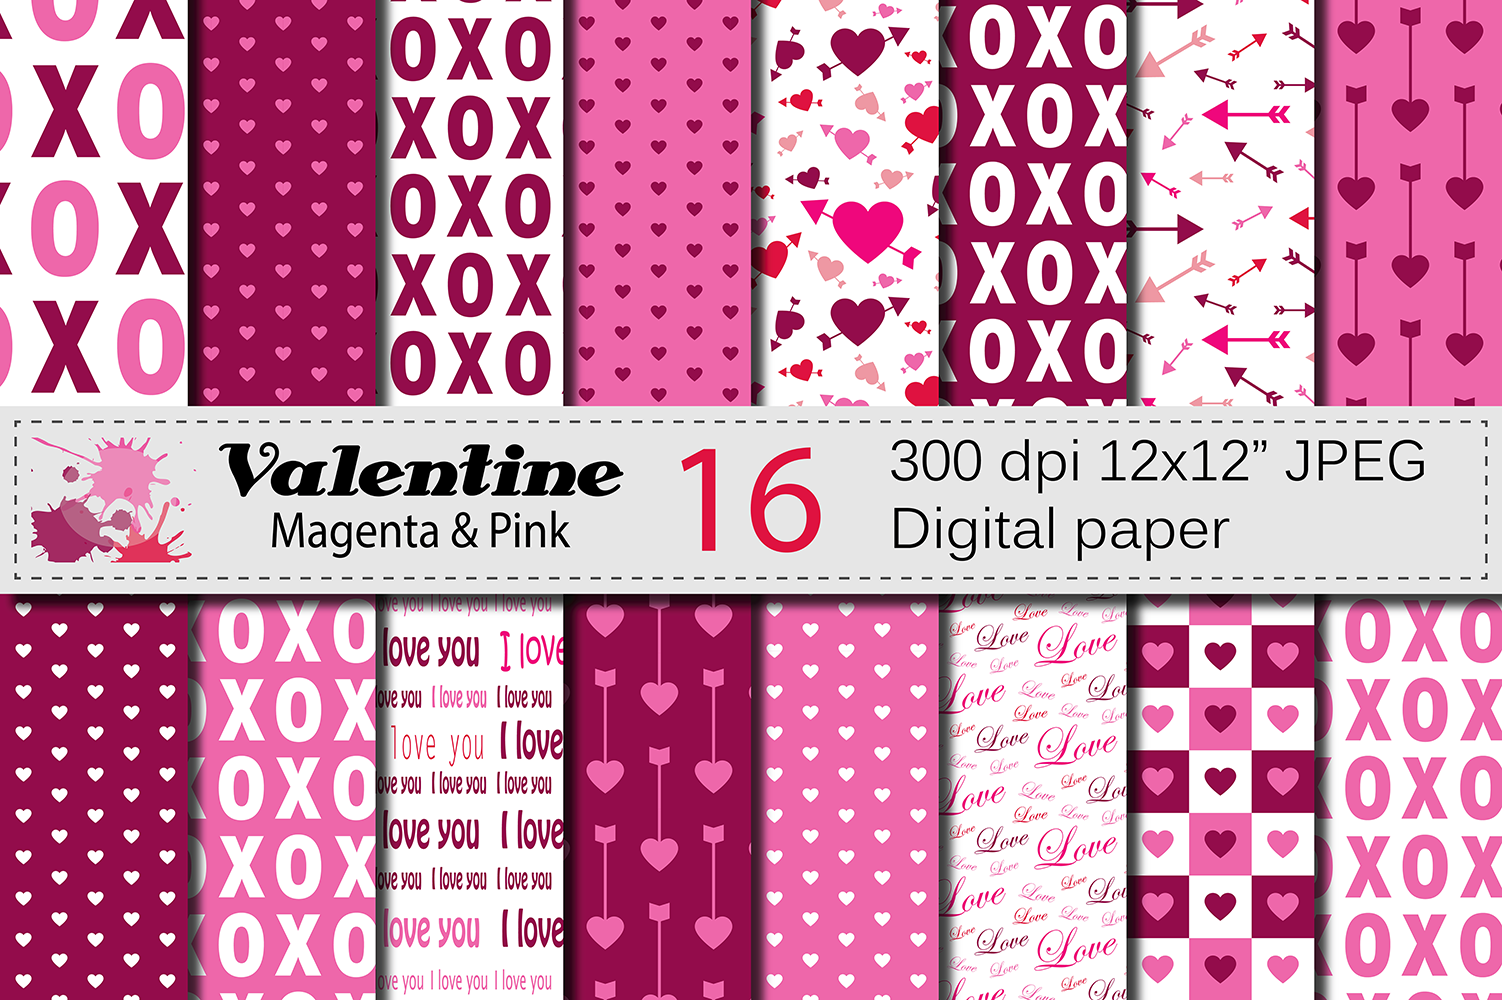 Magenta and Pink Valentine Digital Paper Pack with Hearts and Arrows / Valentine Backgrounds Graphic Backgrounds By VR Digital Design